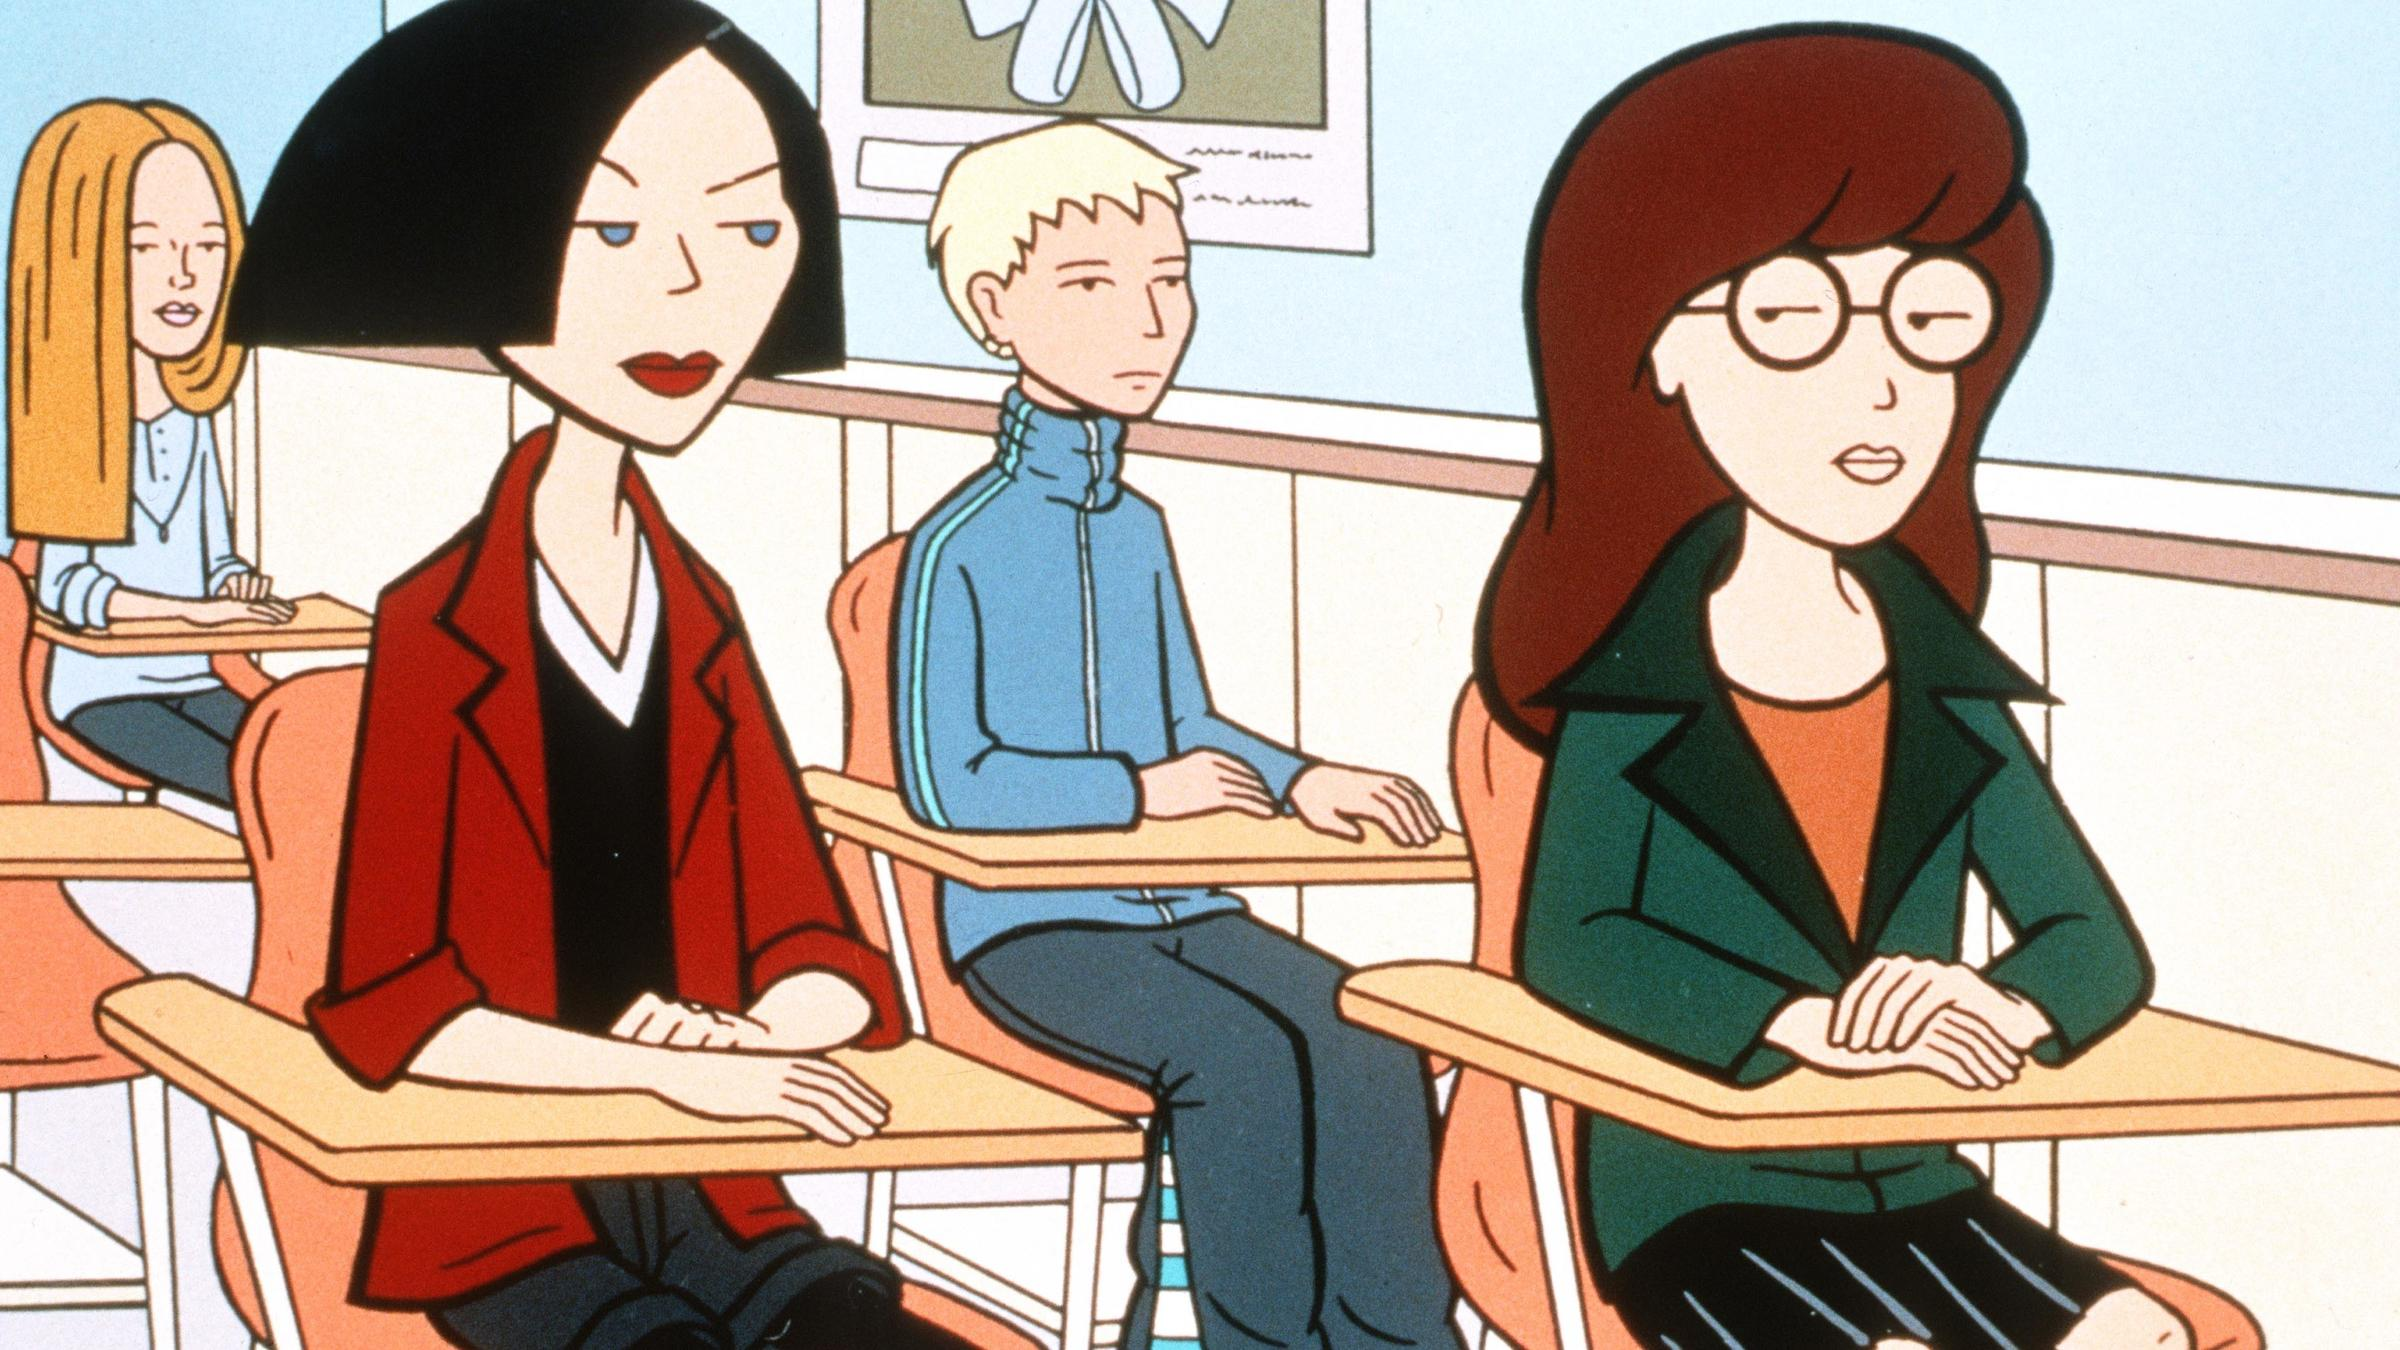 Jane Lane And Daria Morgendorffer From The MTV Series